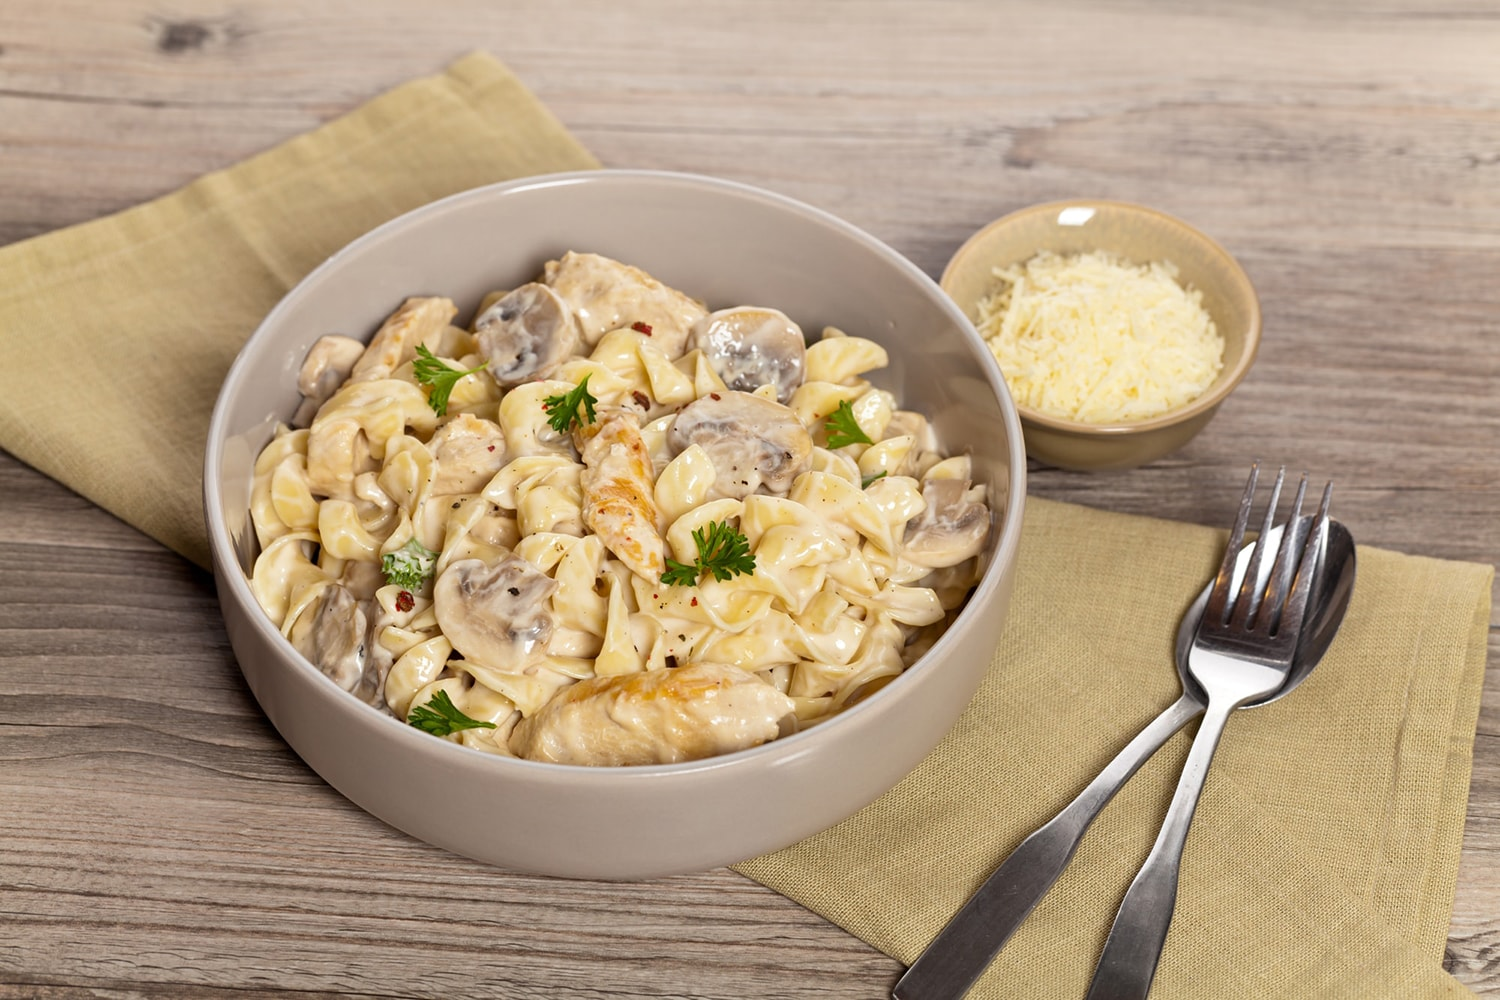 Healthy One Pot Chicken Mushroom Pasta in a dish with a wooden spoon.